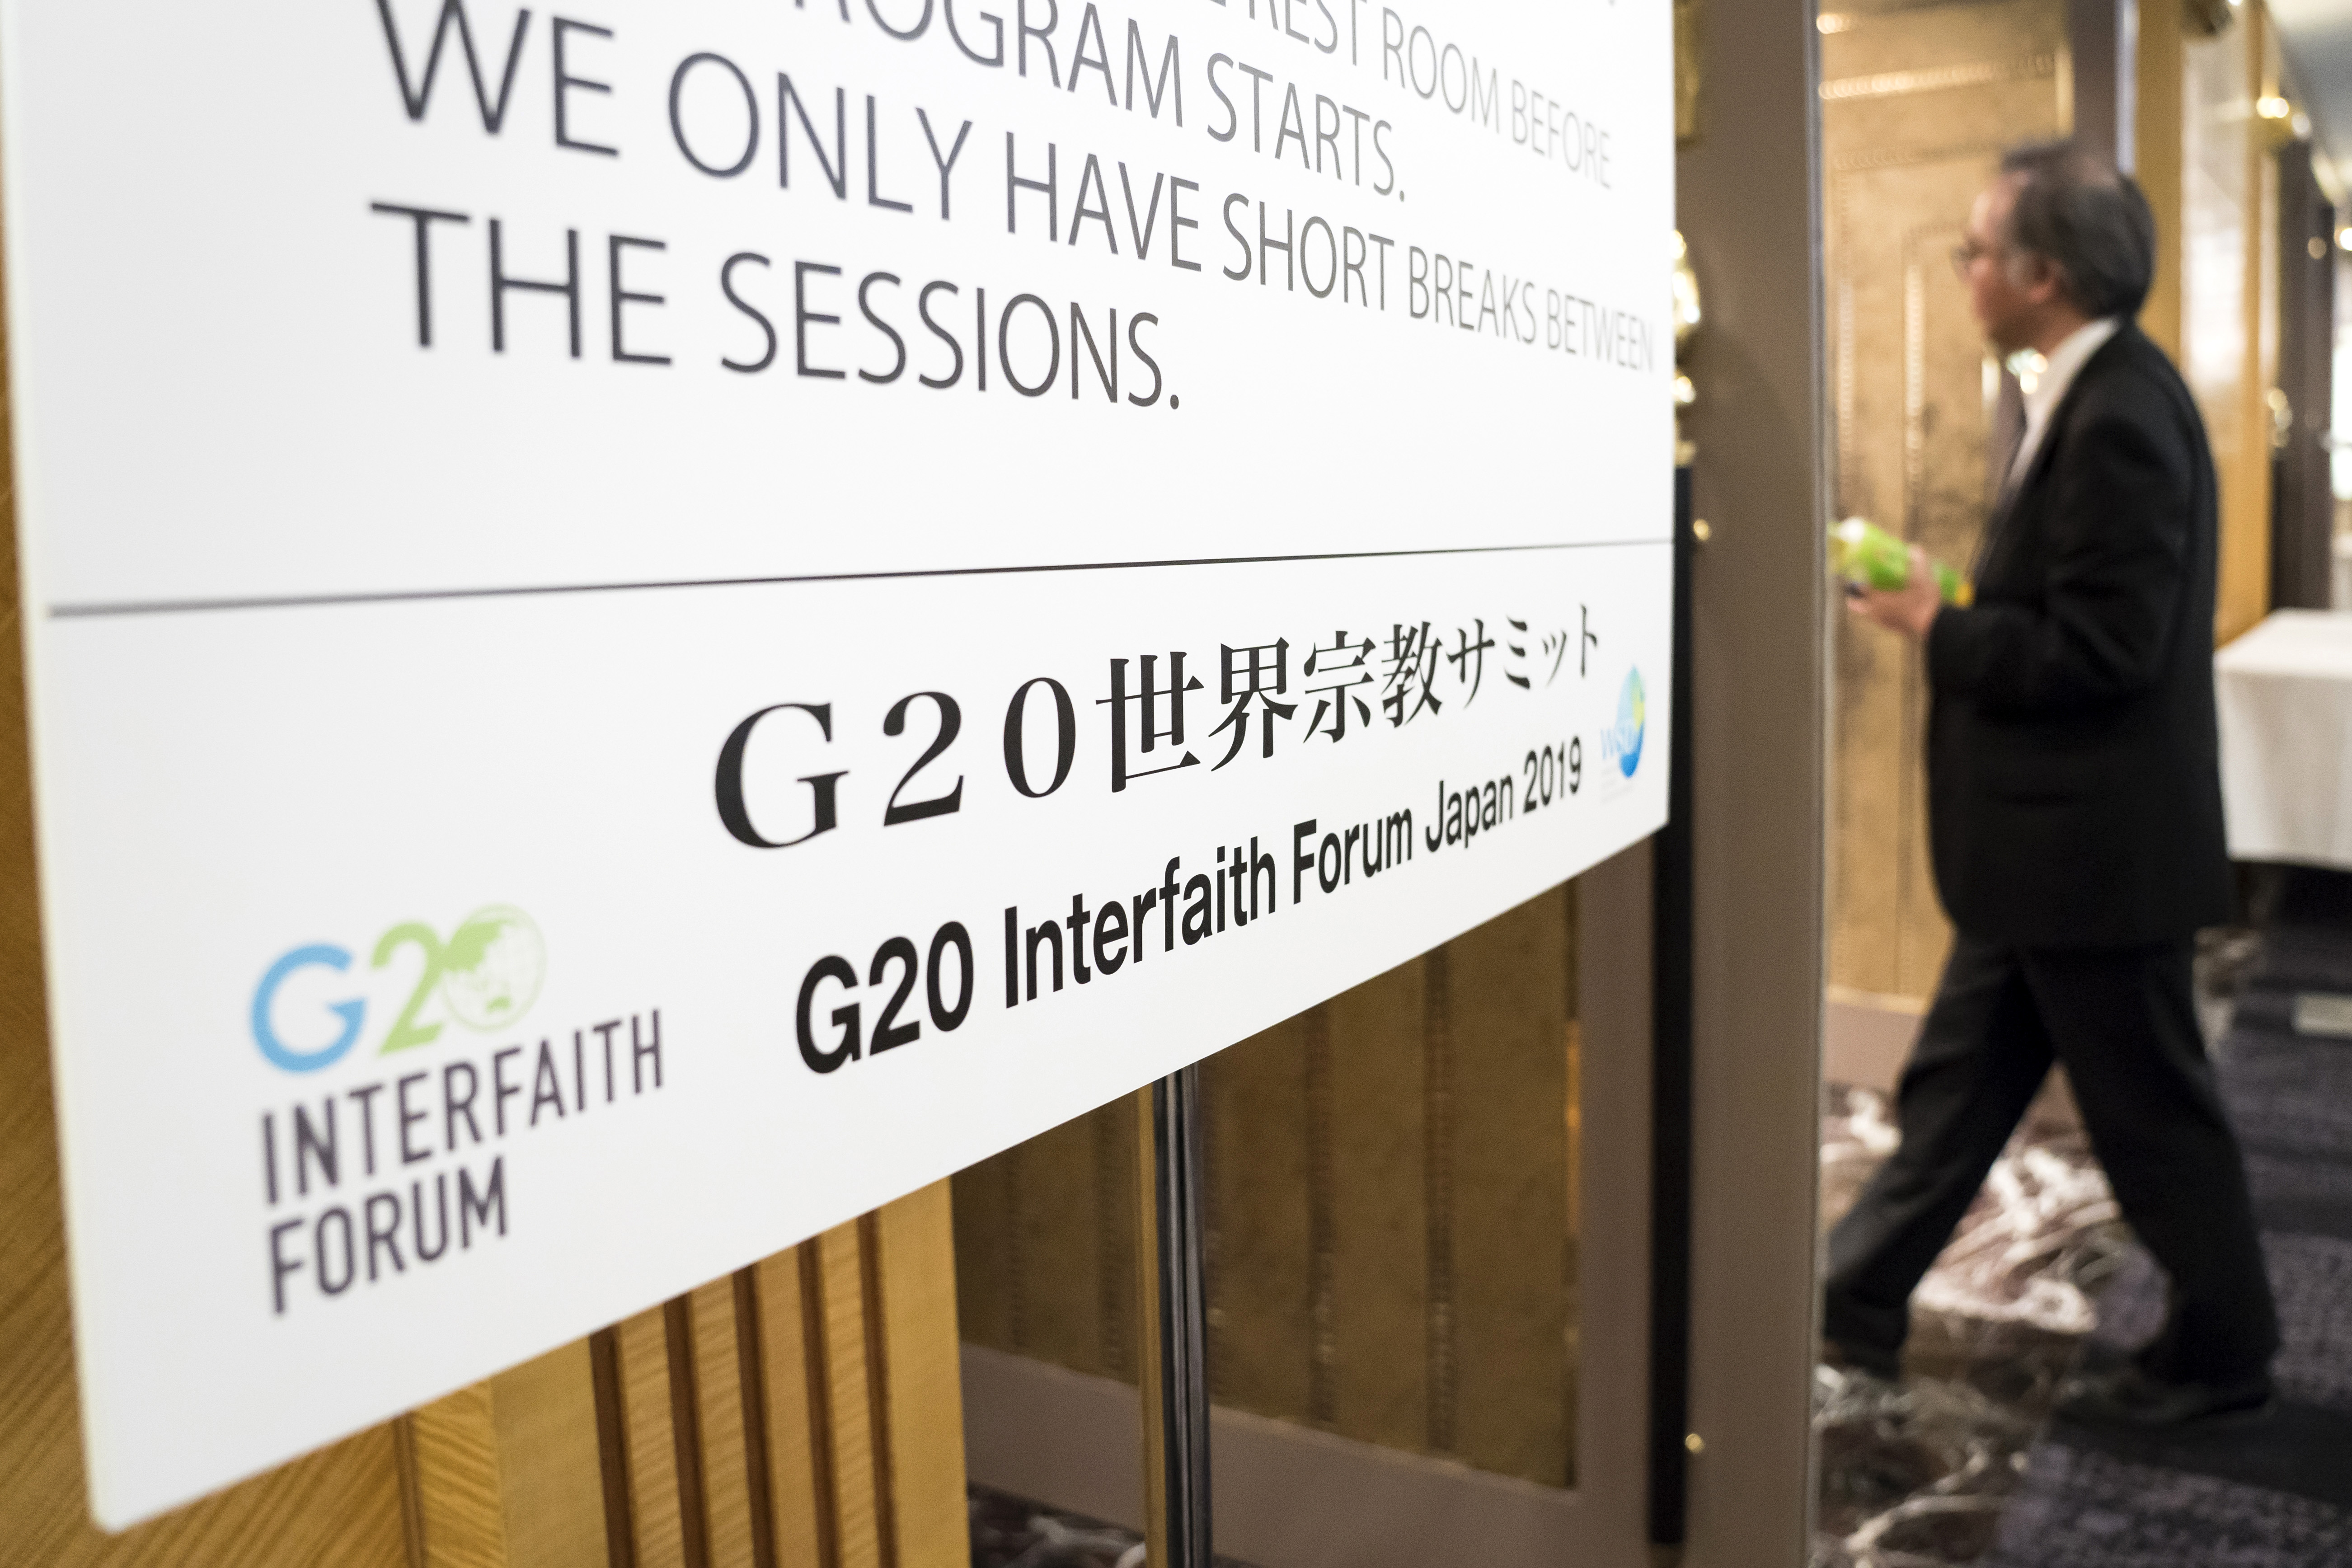 An attendee enter a conference room during the G20 Interfaith Forum in Chiba, Japan, on Saturday, June 8, 2019.